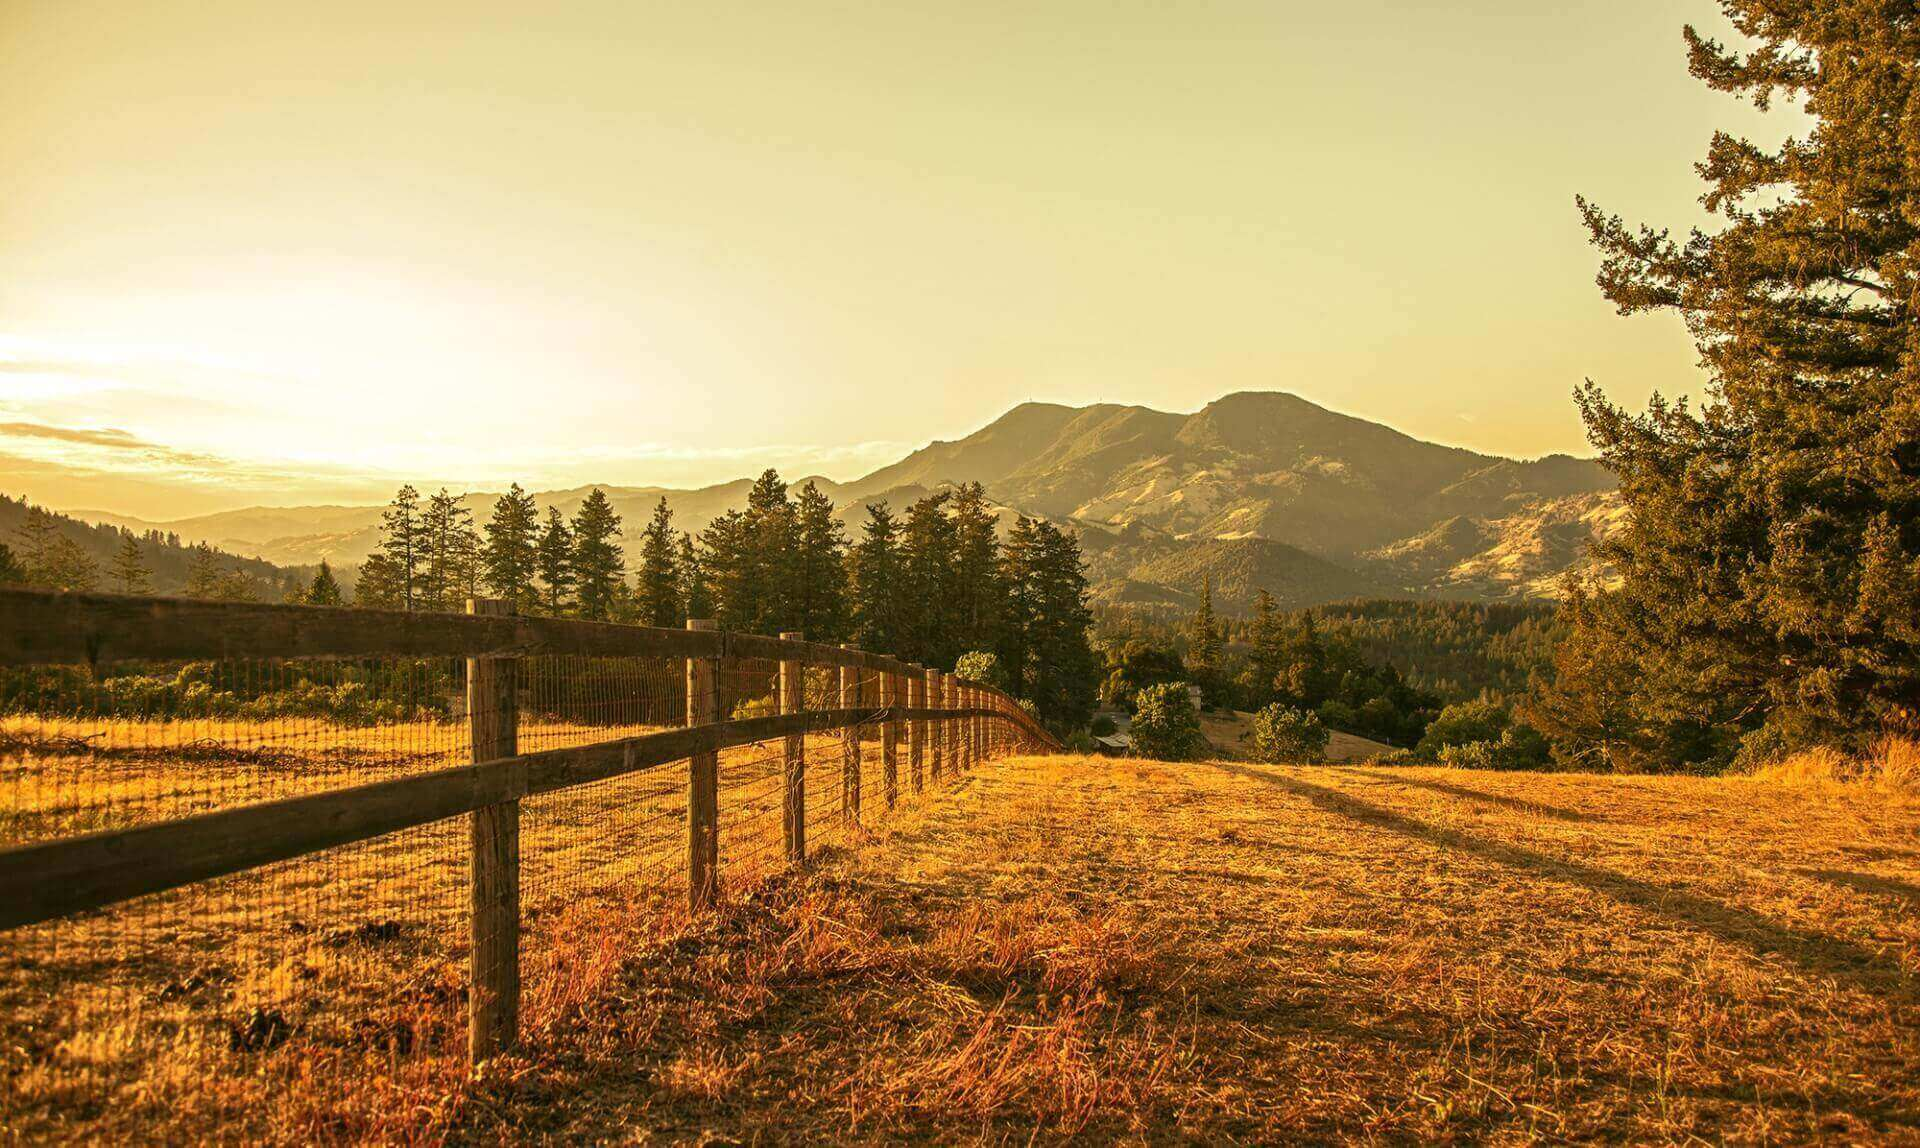 Vineyard Landscape Facing Mountain During Sunset